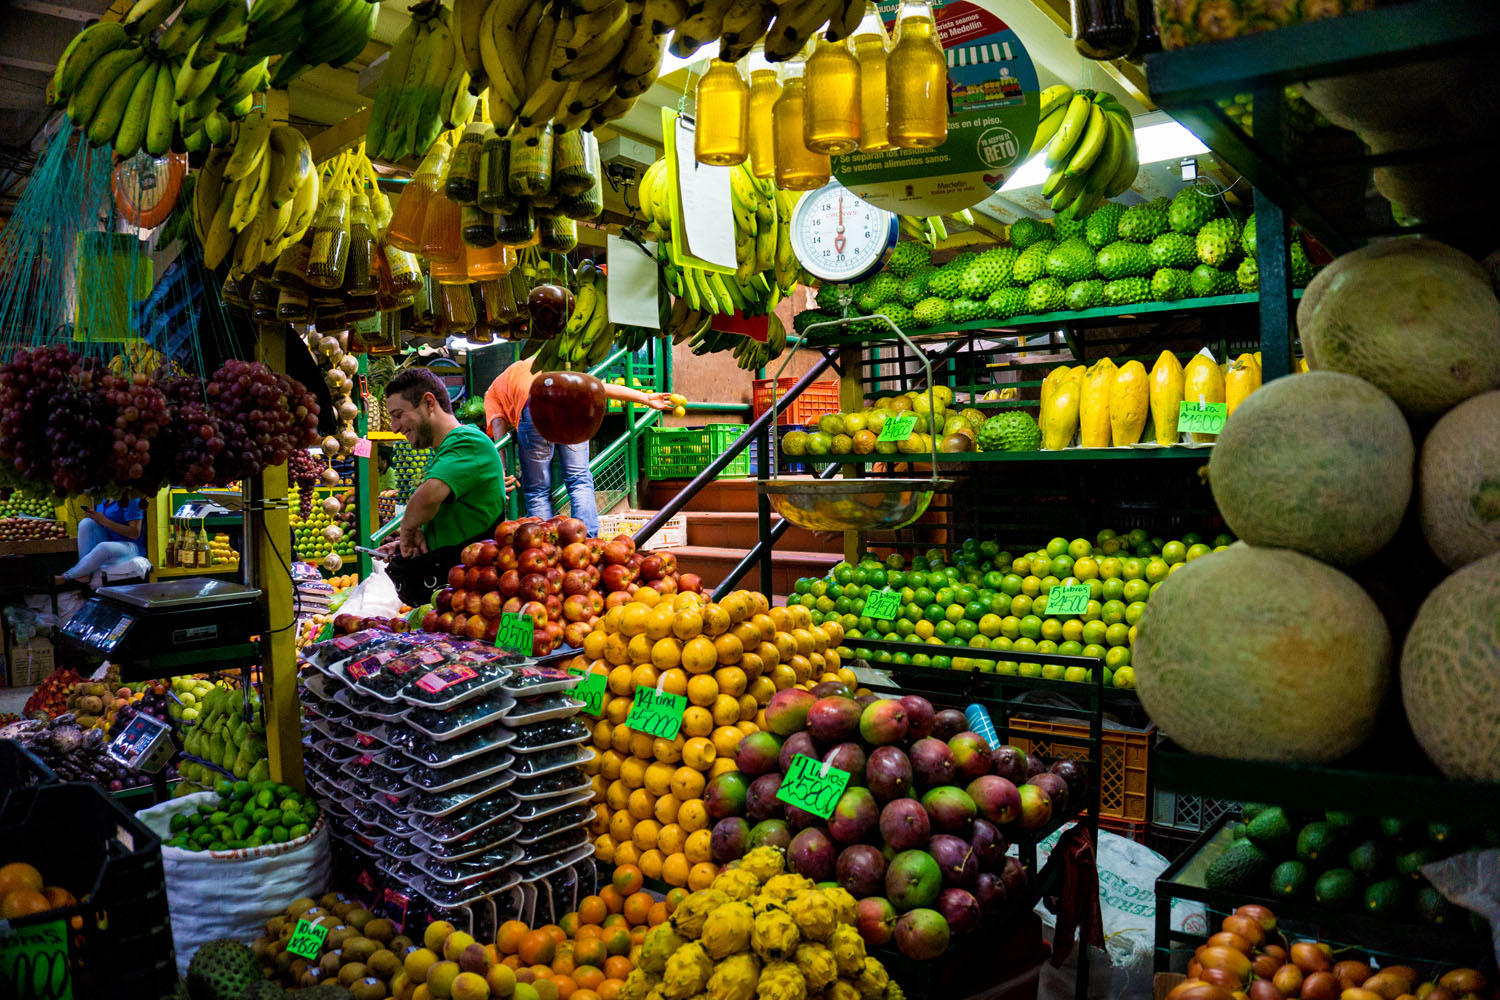 One of many fruit markets in Colombia.